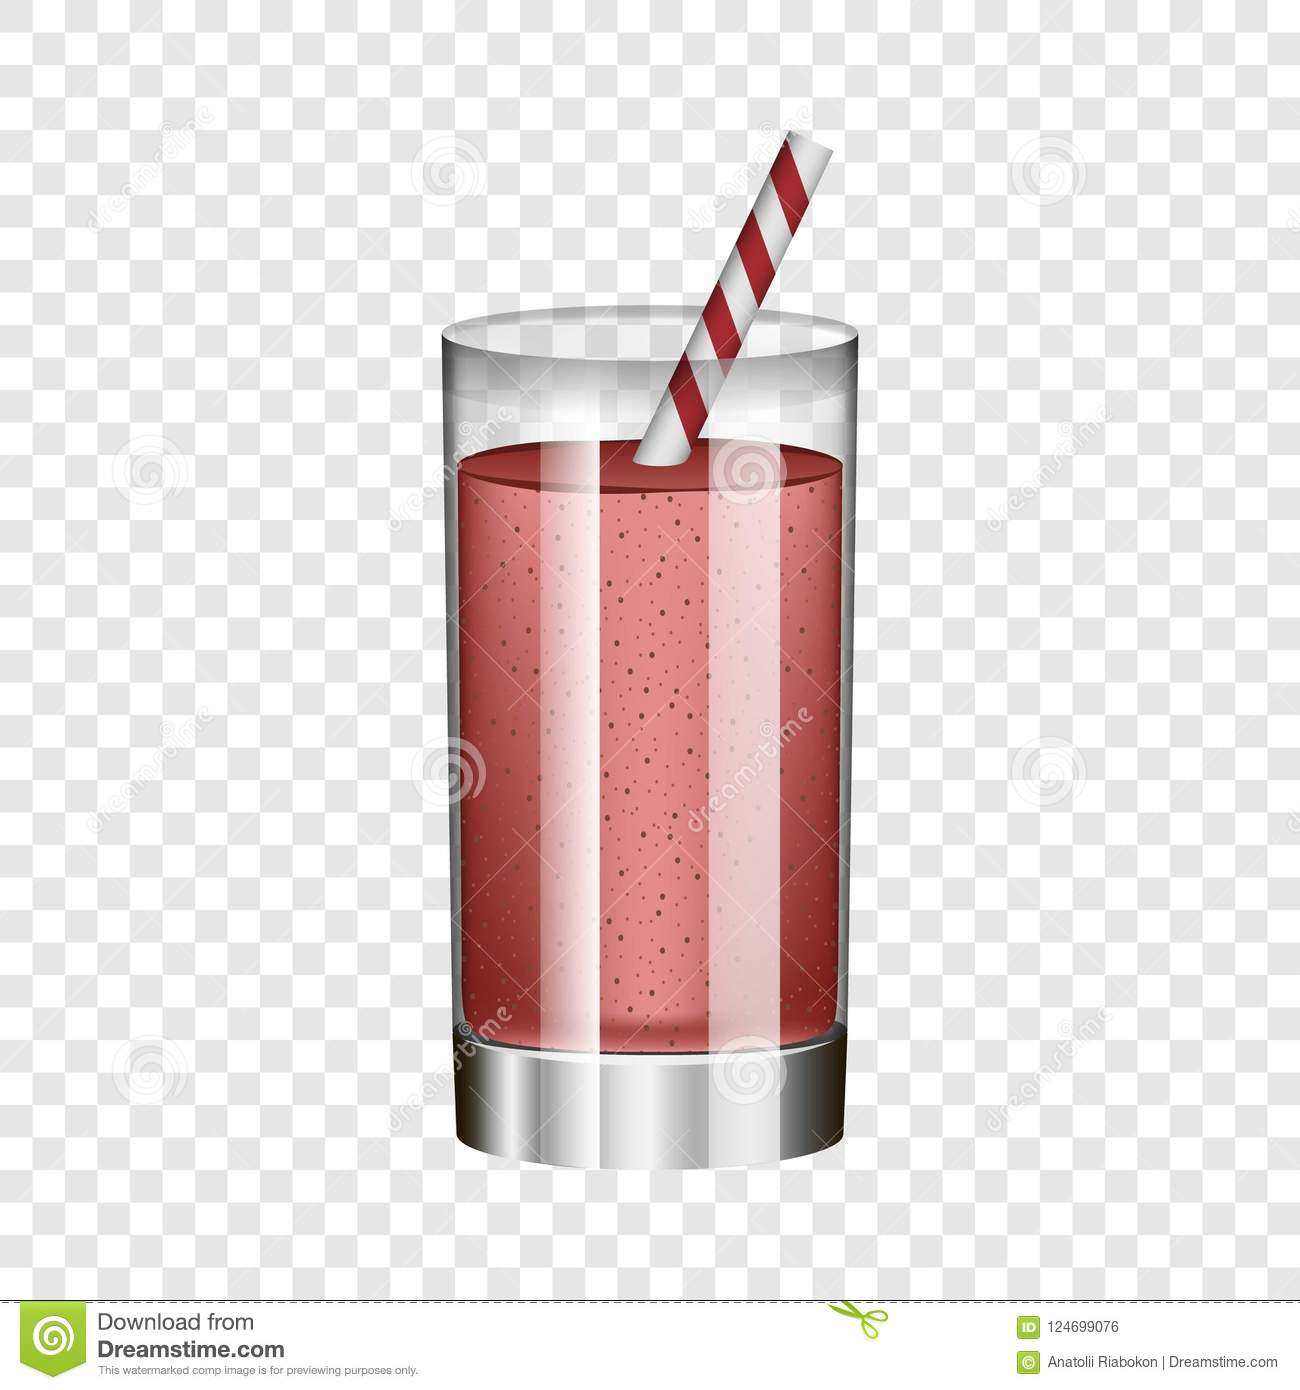 Red smoothie in glass mockup, realistic style